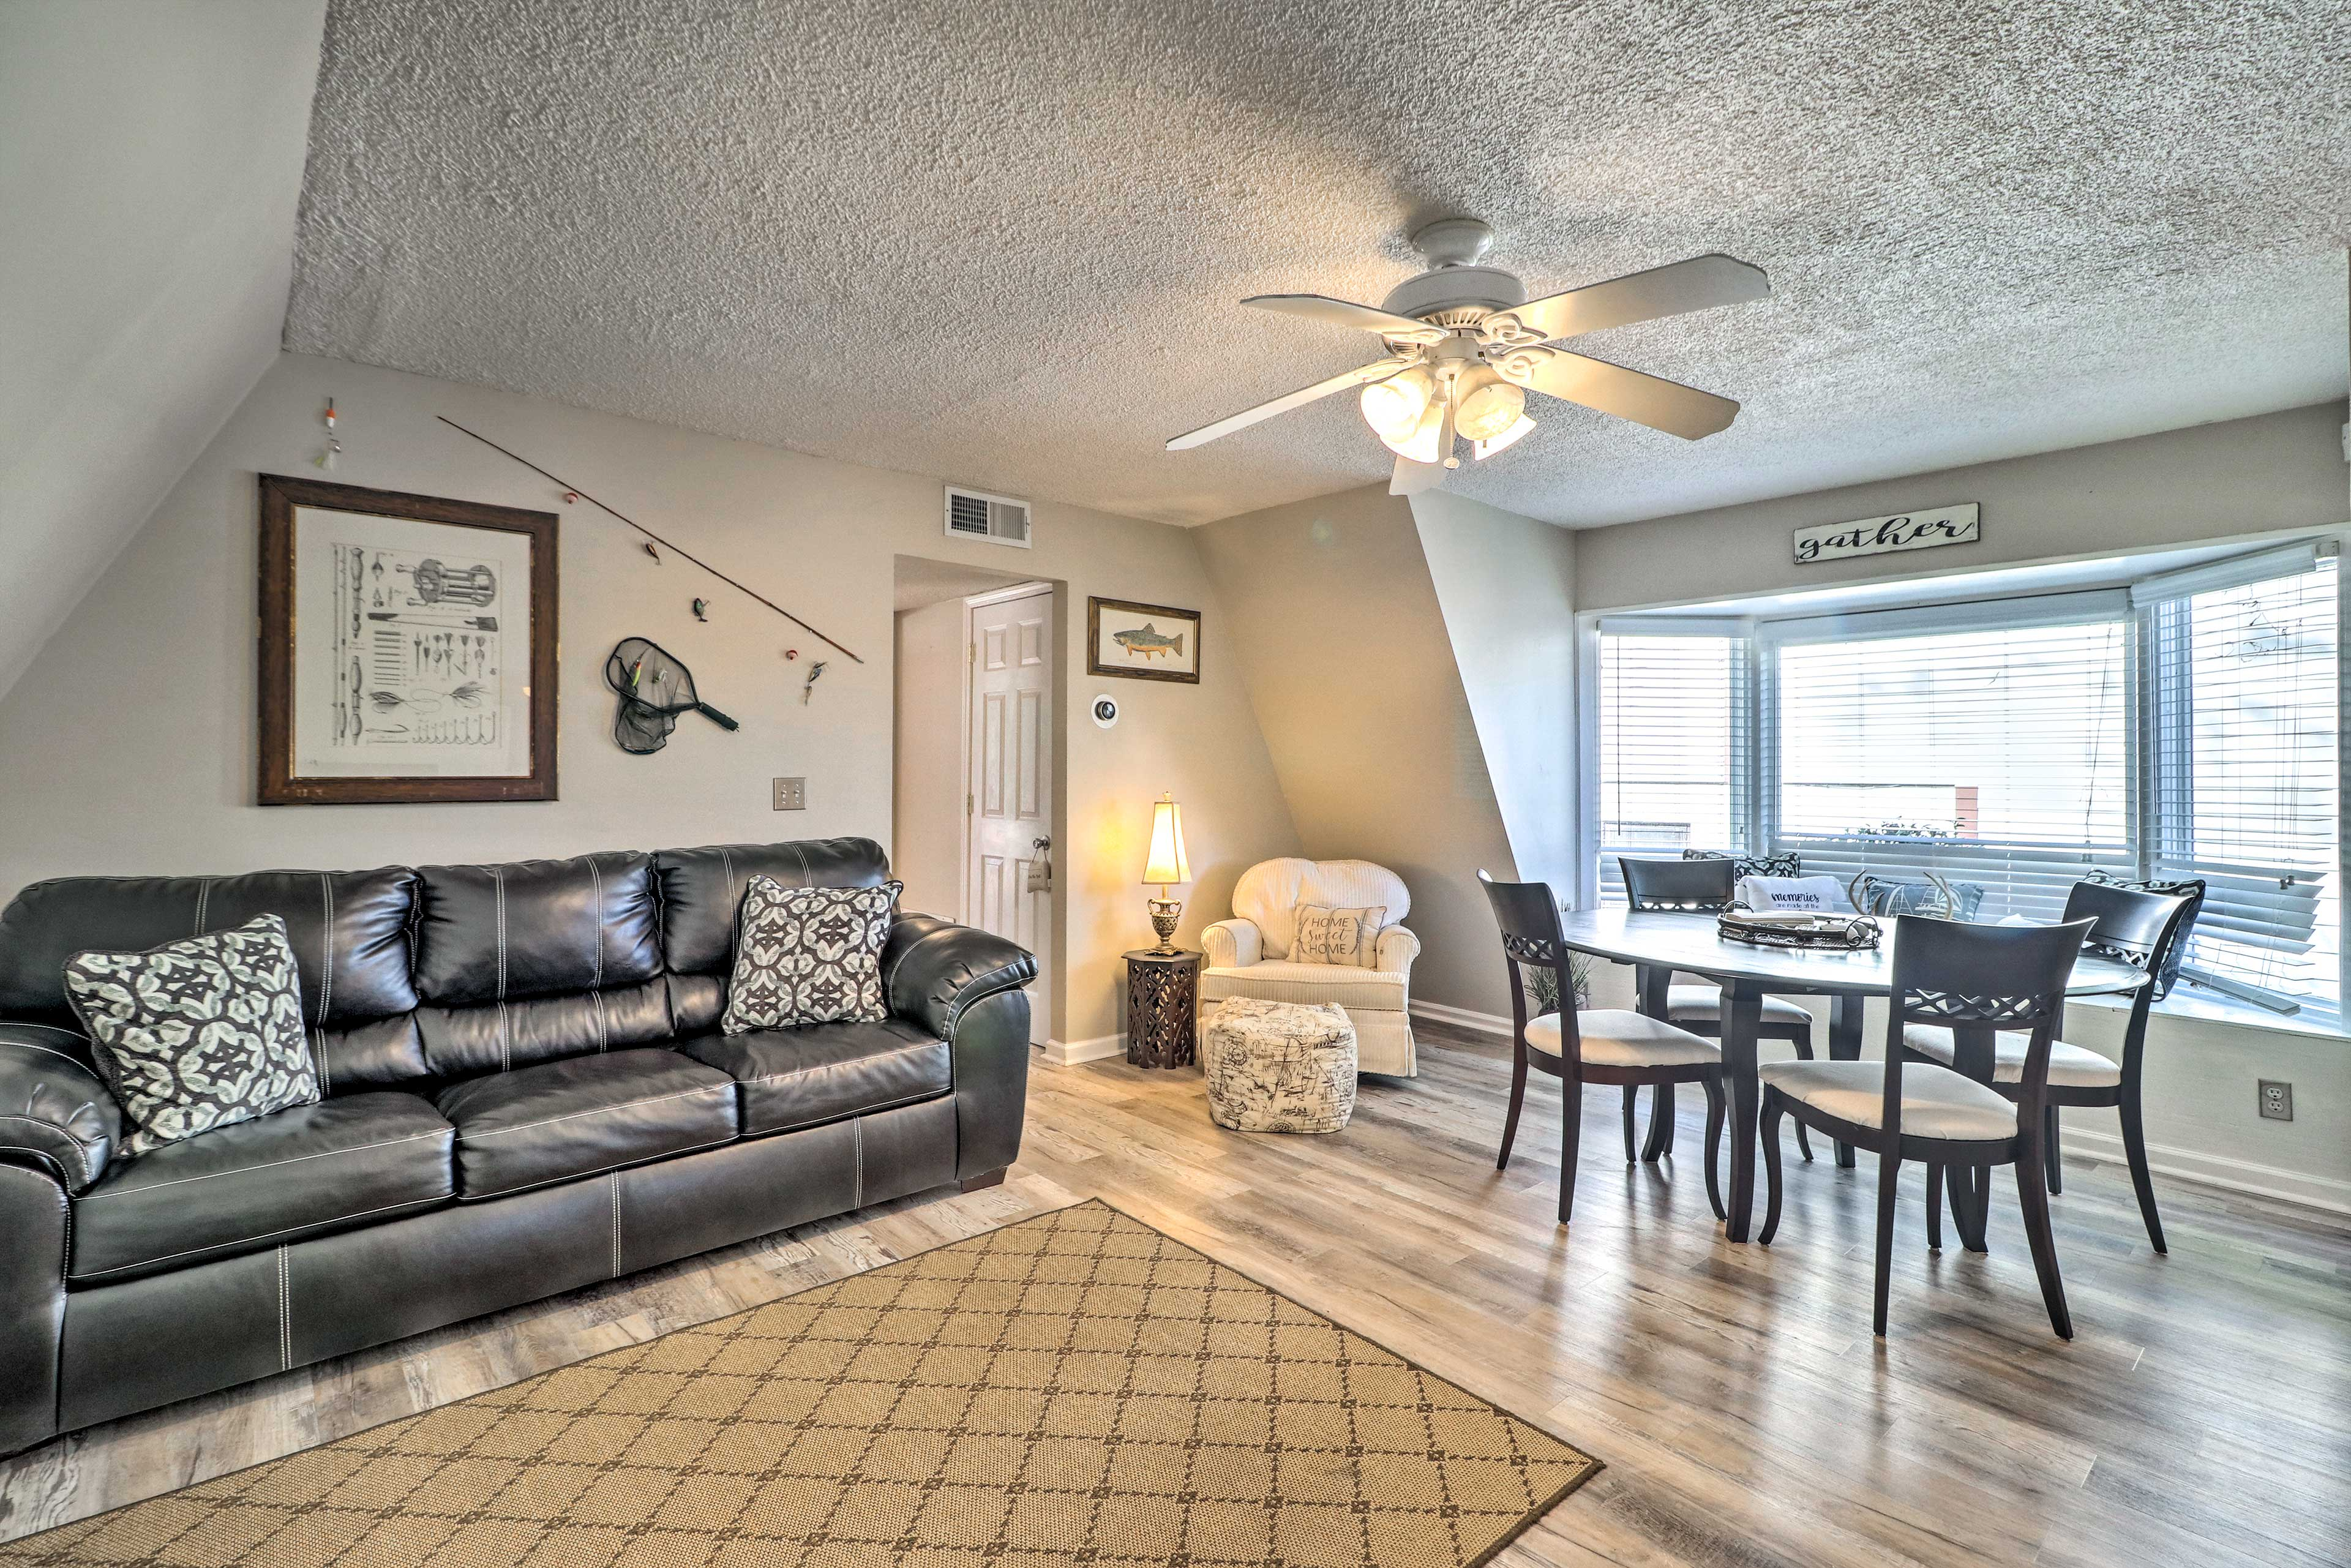 The living room is complete with a leather sofa and dining table.